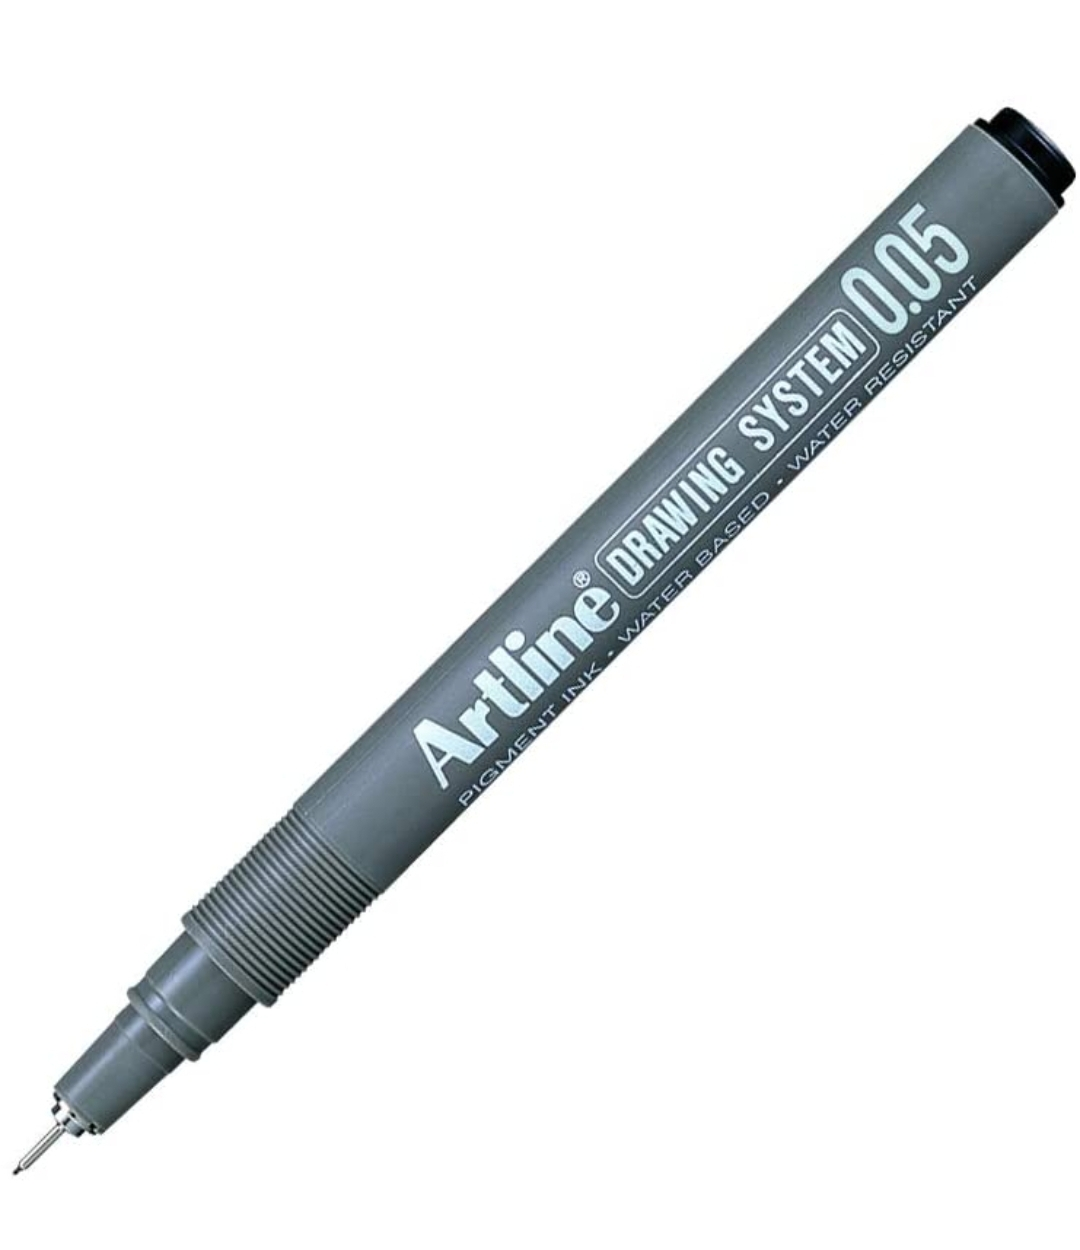 Artline Drawing System Artistic Technical Pen 0.05 mm Point Size Pack of 1